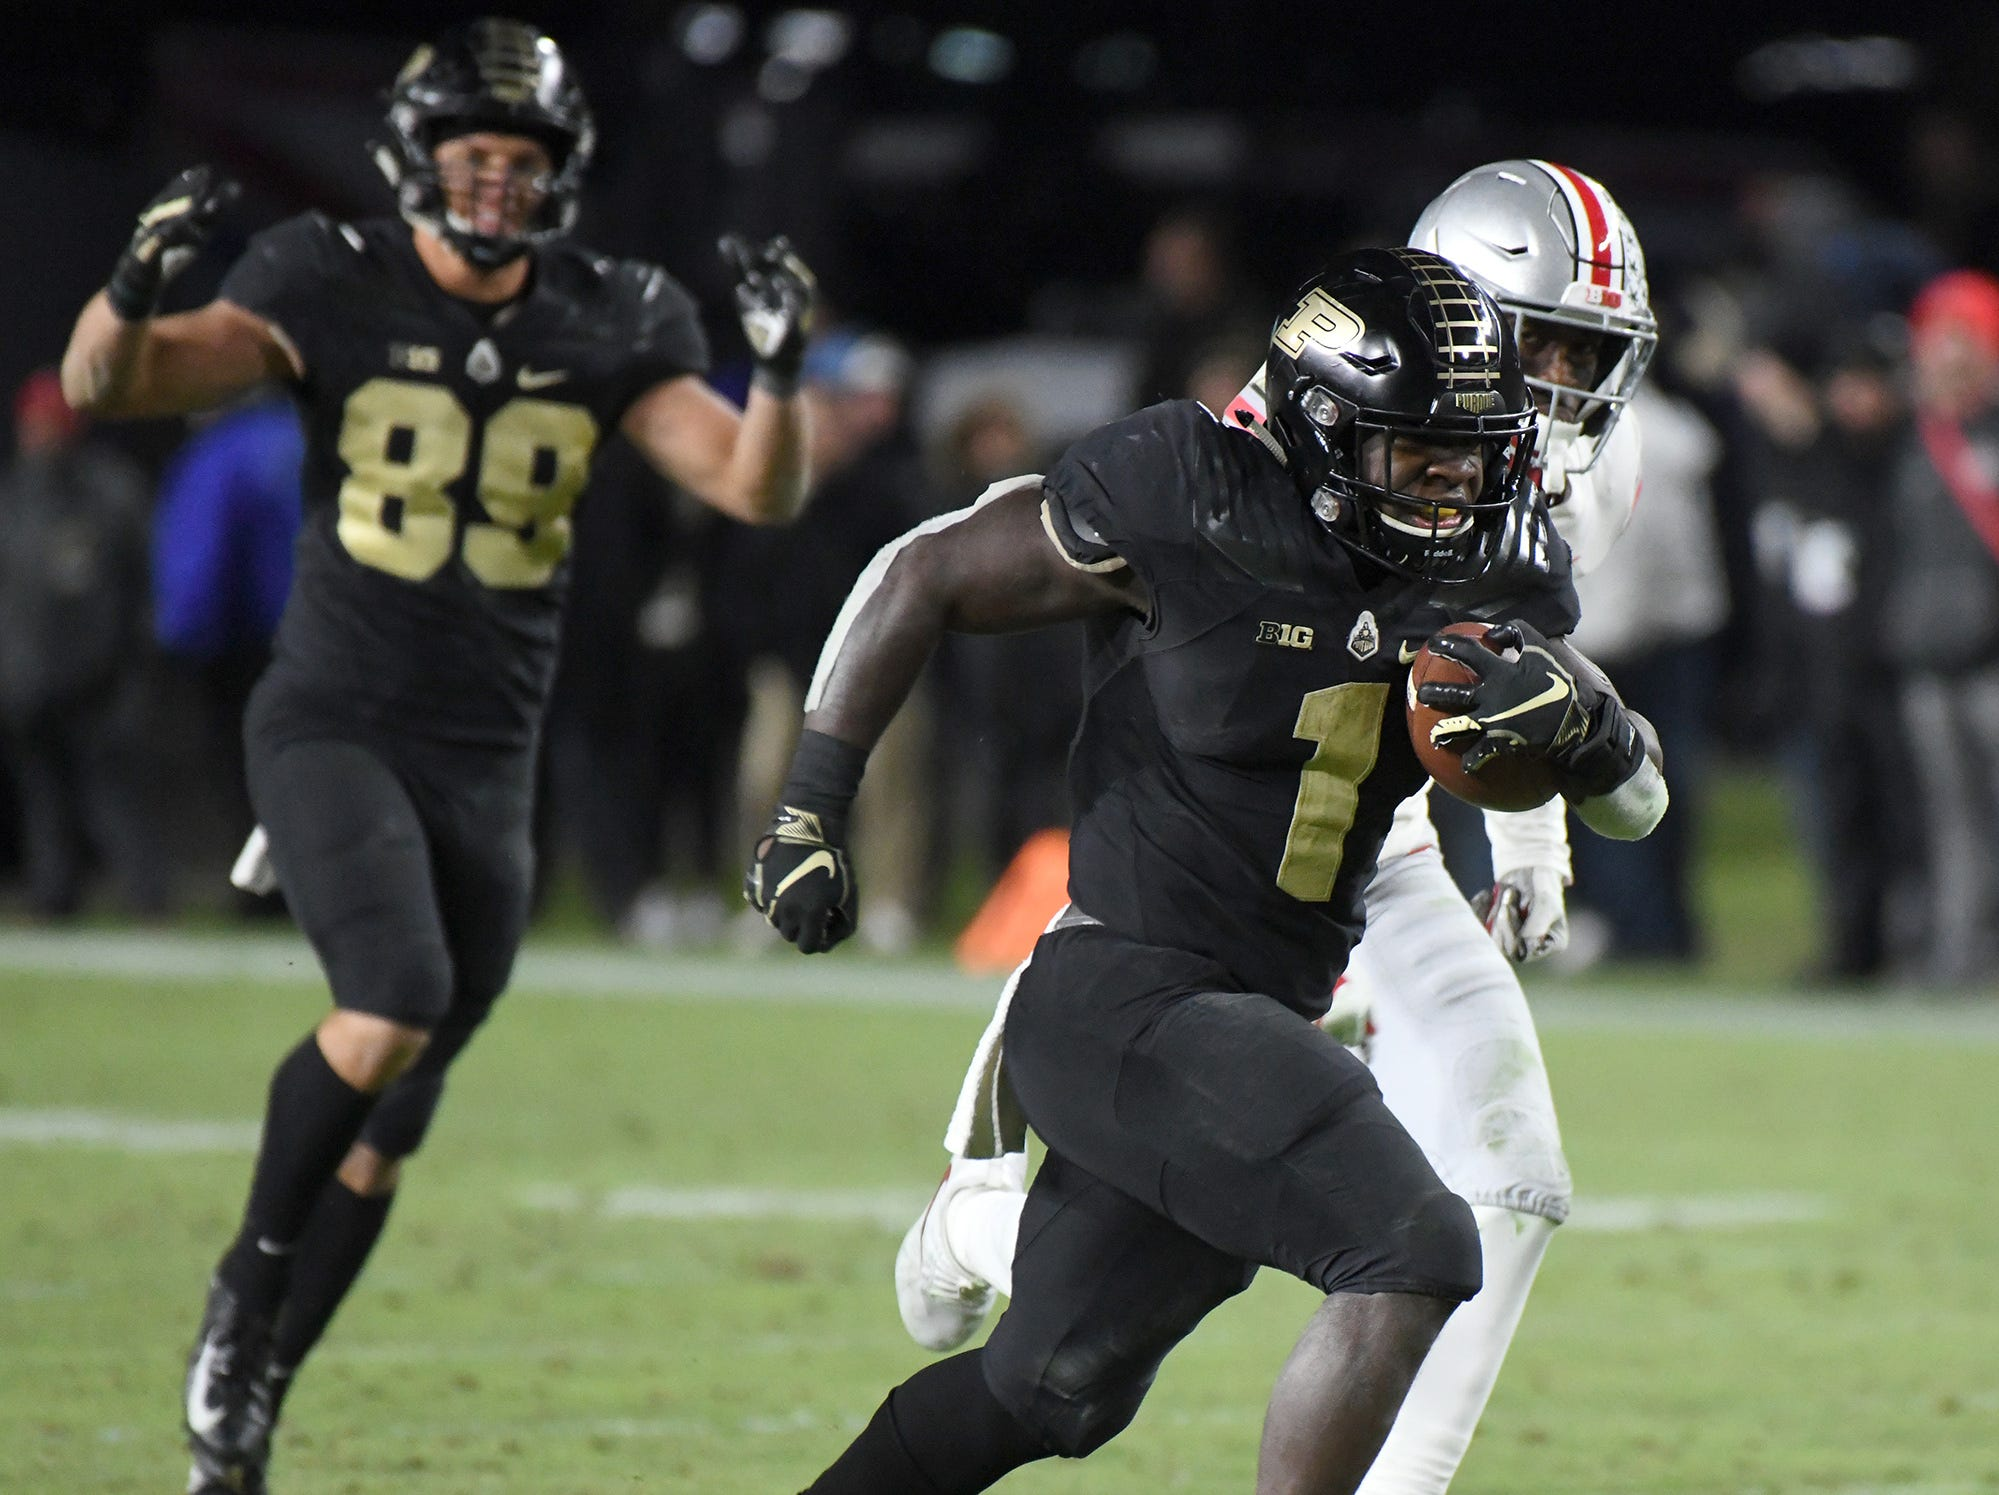 Purdue's D.J. Knox heads for the endzone as Purdue upsets Ohio State in West Lafayette on Saturday October 20, 2018.